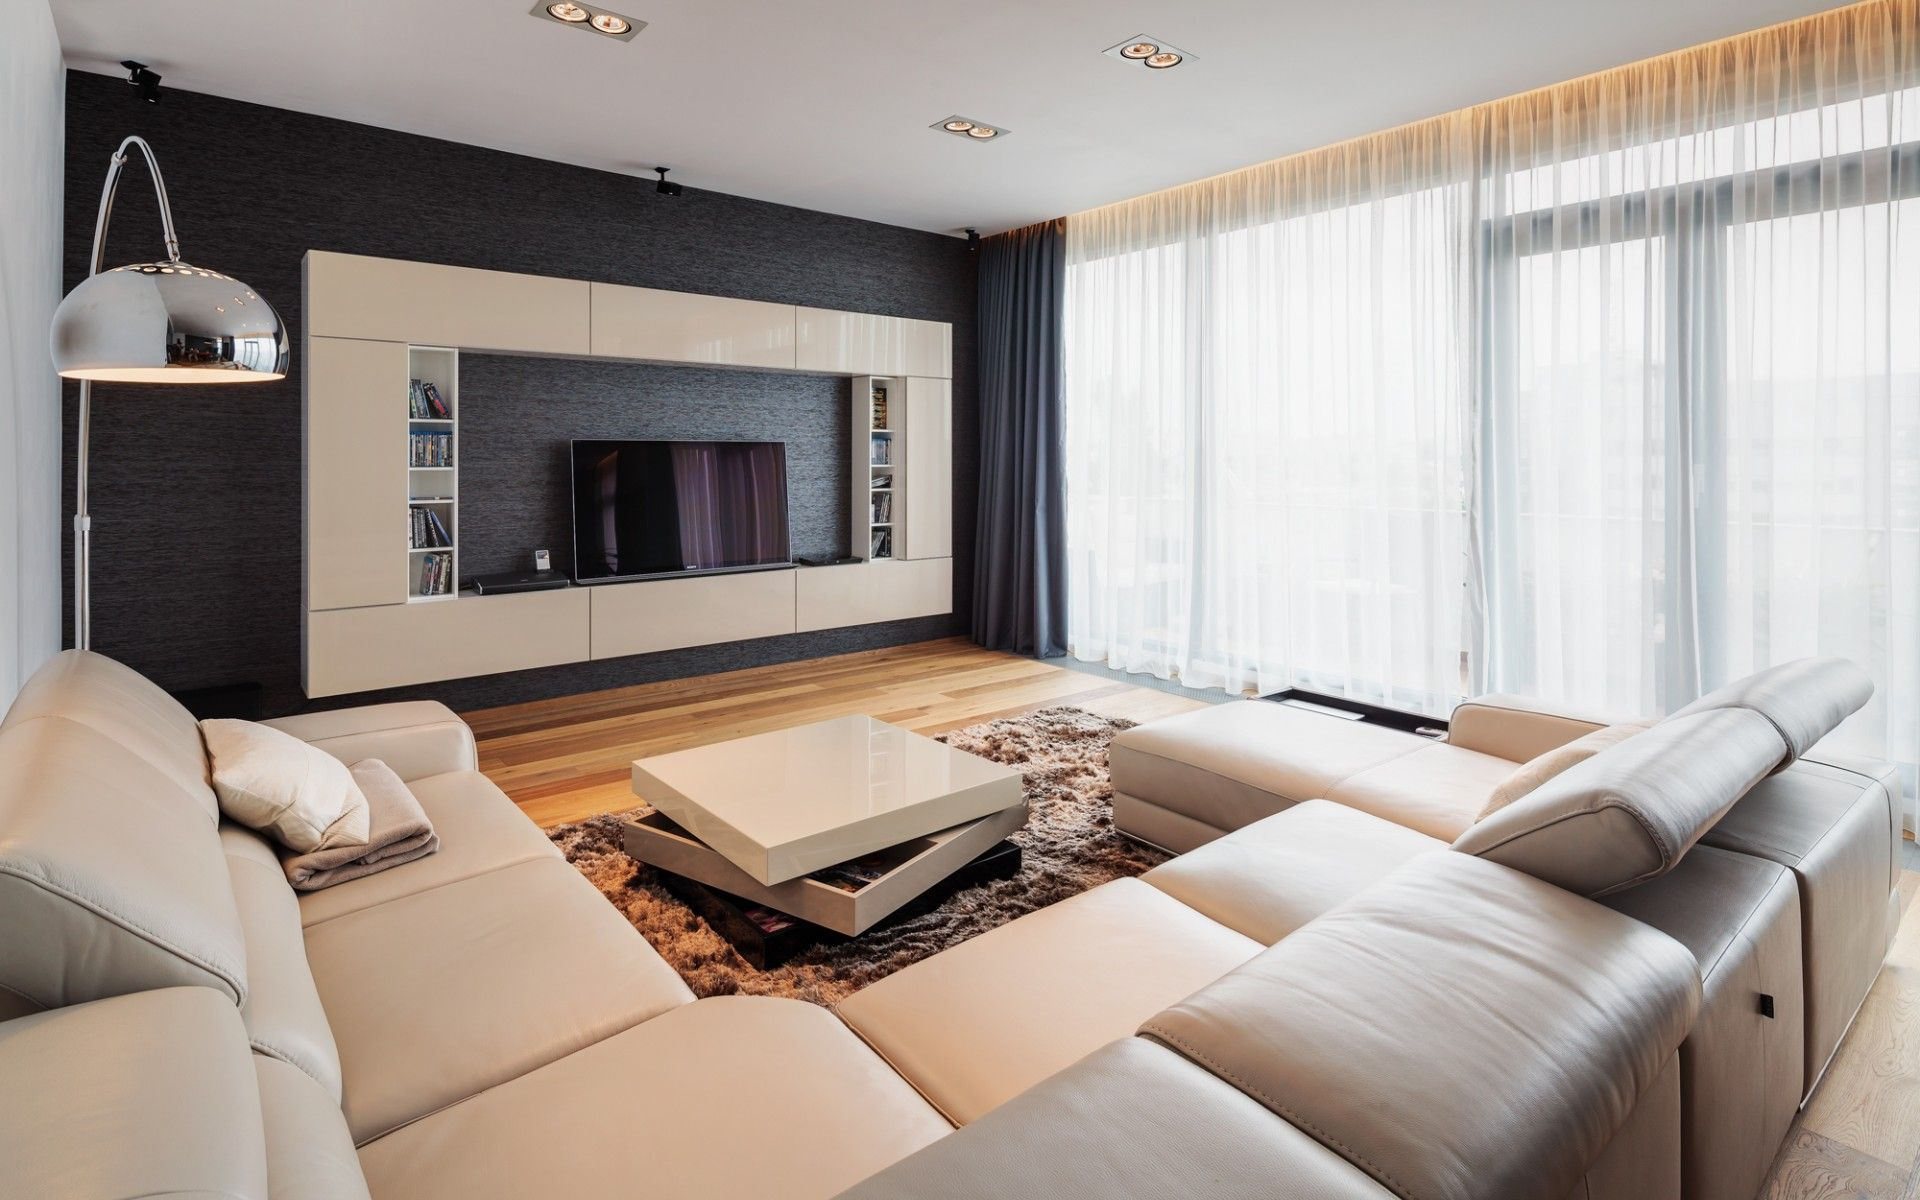 Wonderful Large Modern Tv Room Design With Cream Leather L Shaped